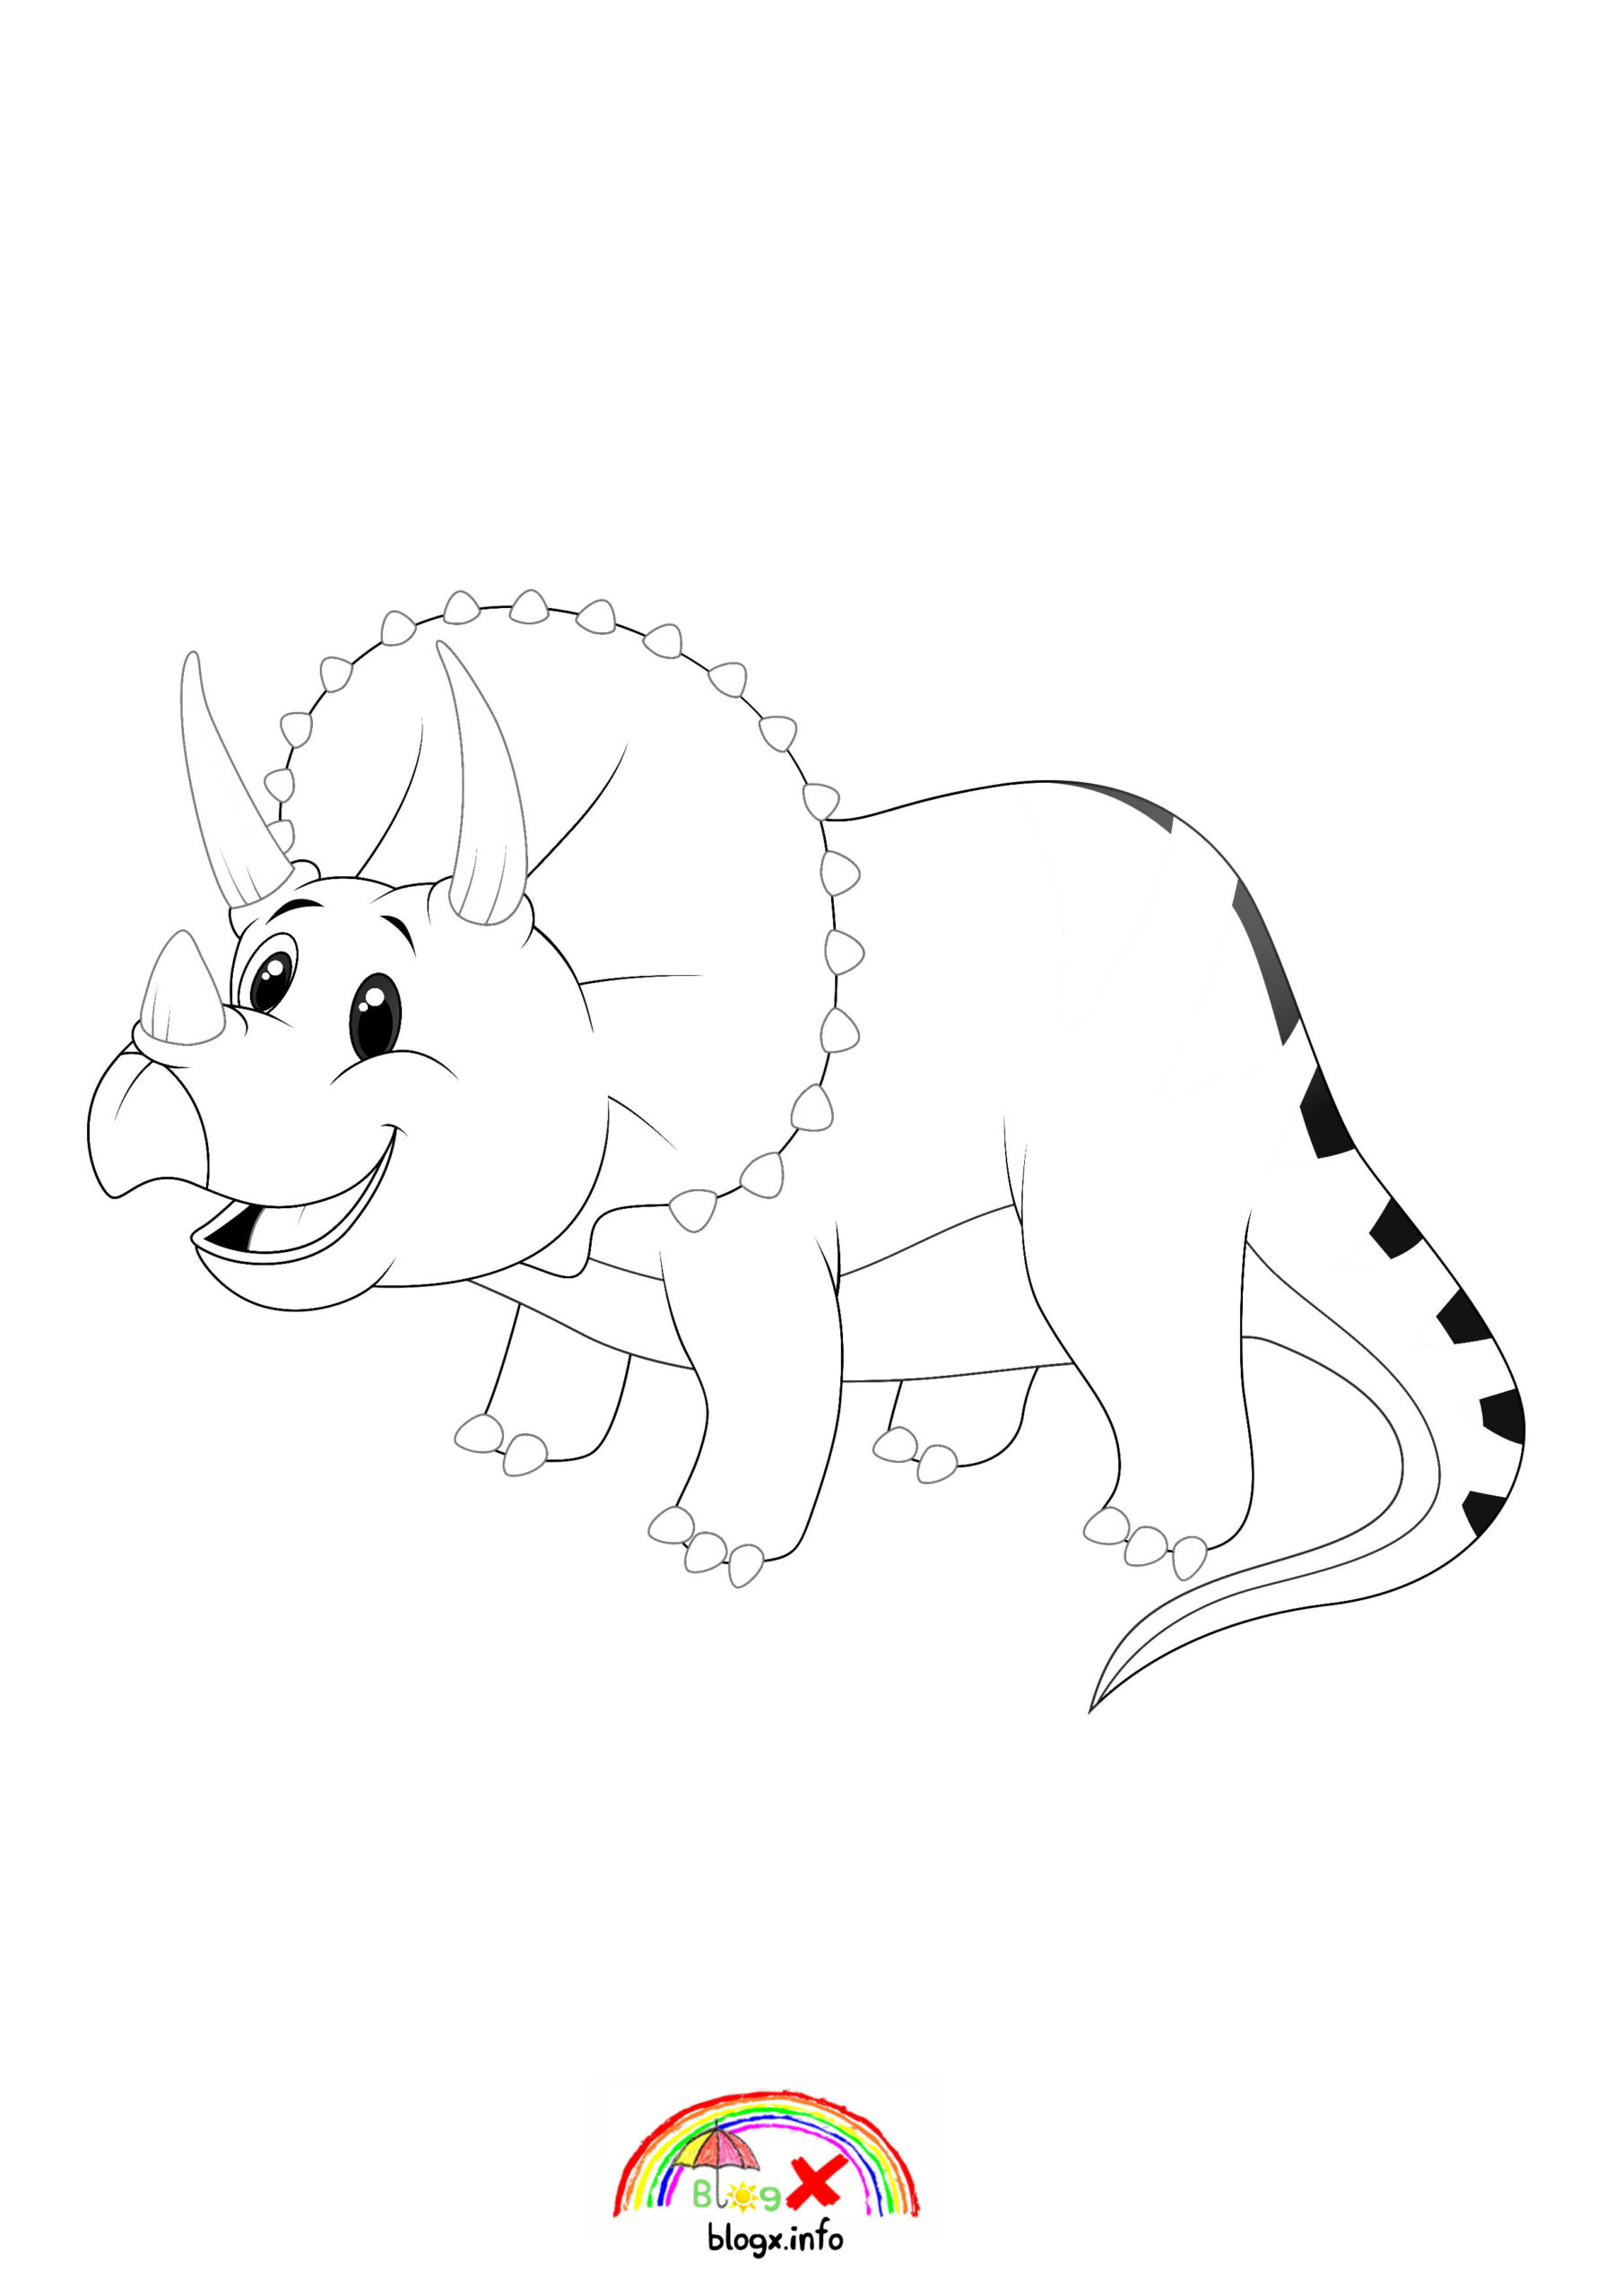 baby triceratops coloring page cute baby triceratops dinosaurs coloring page blogxinfo page baby coloring triceratops